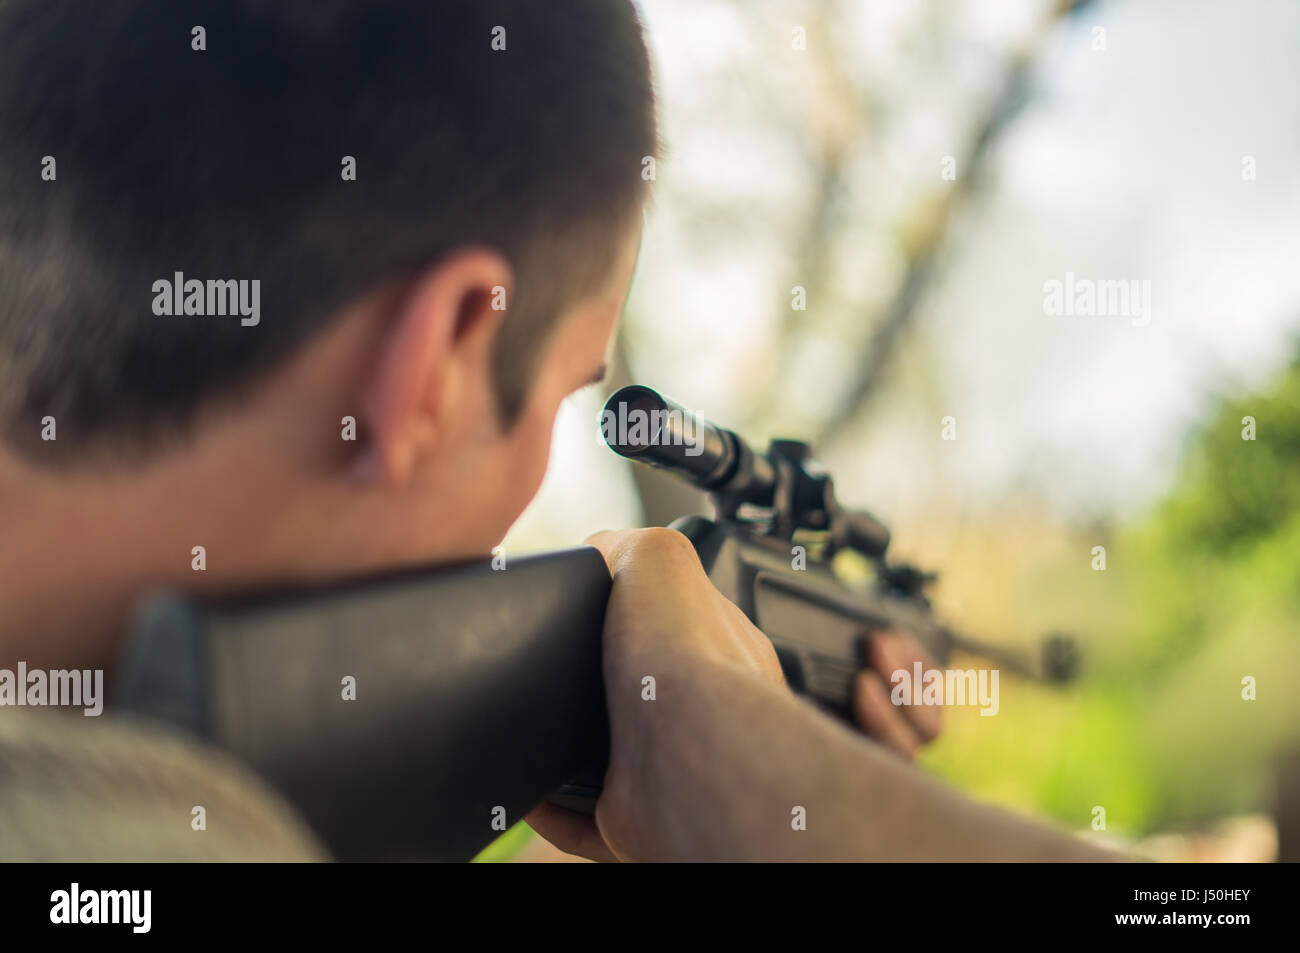 The man takes aim at the target with a sniper rifle. Selective Focus - Stock Image